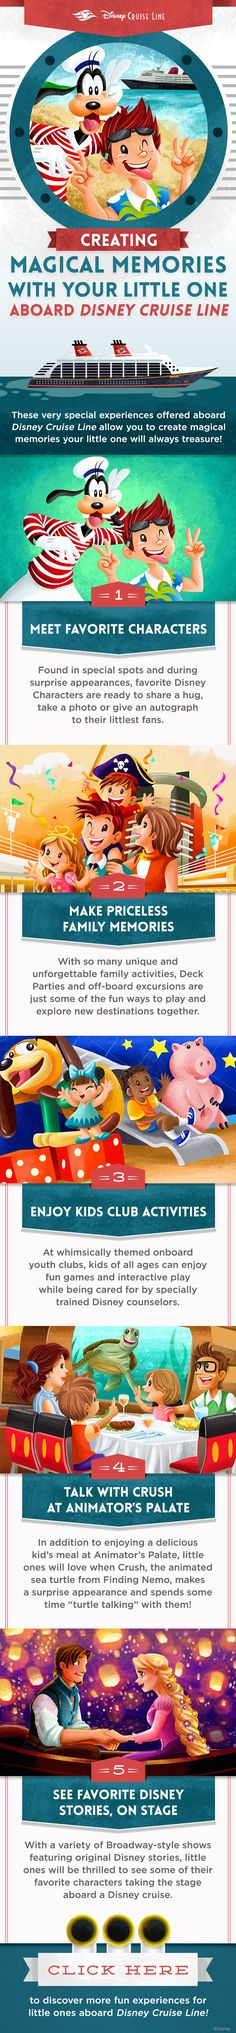 Disney Cruise Line offers very special experiences onboard that allow you to create magical memories your little ones will always treasure. Learn more about Disney Cruise Line at www. Disney Planning, Disney Tips, Disney Fun, Trip Planning, Disney Travel, Disney Fantasy, Disney Destinations, Disney Vacations, Vacation Planner